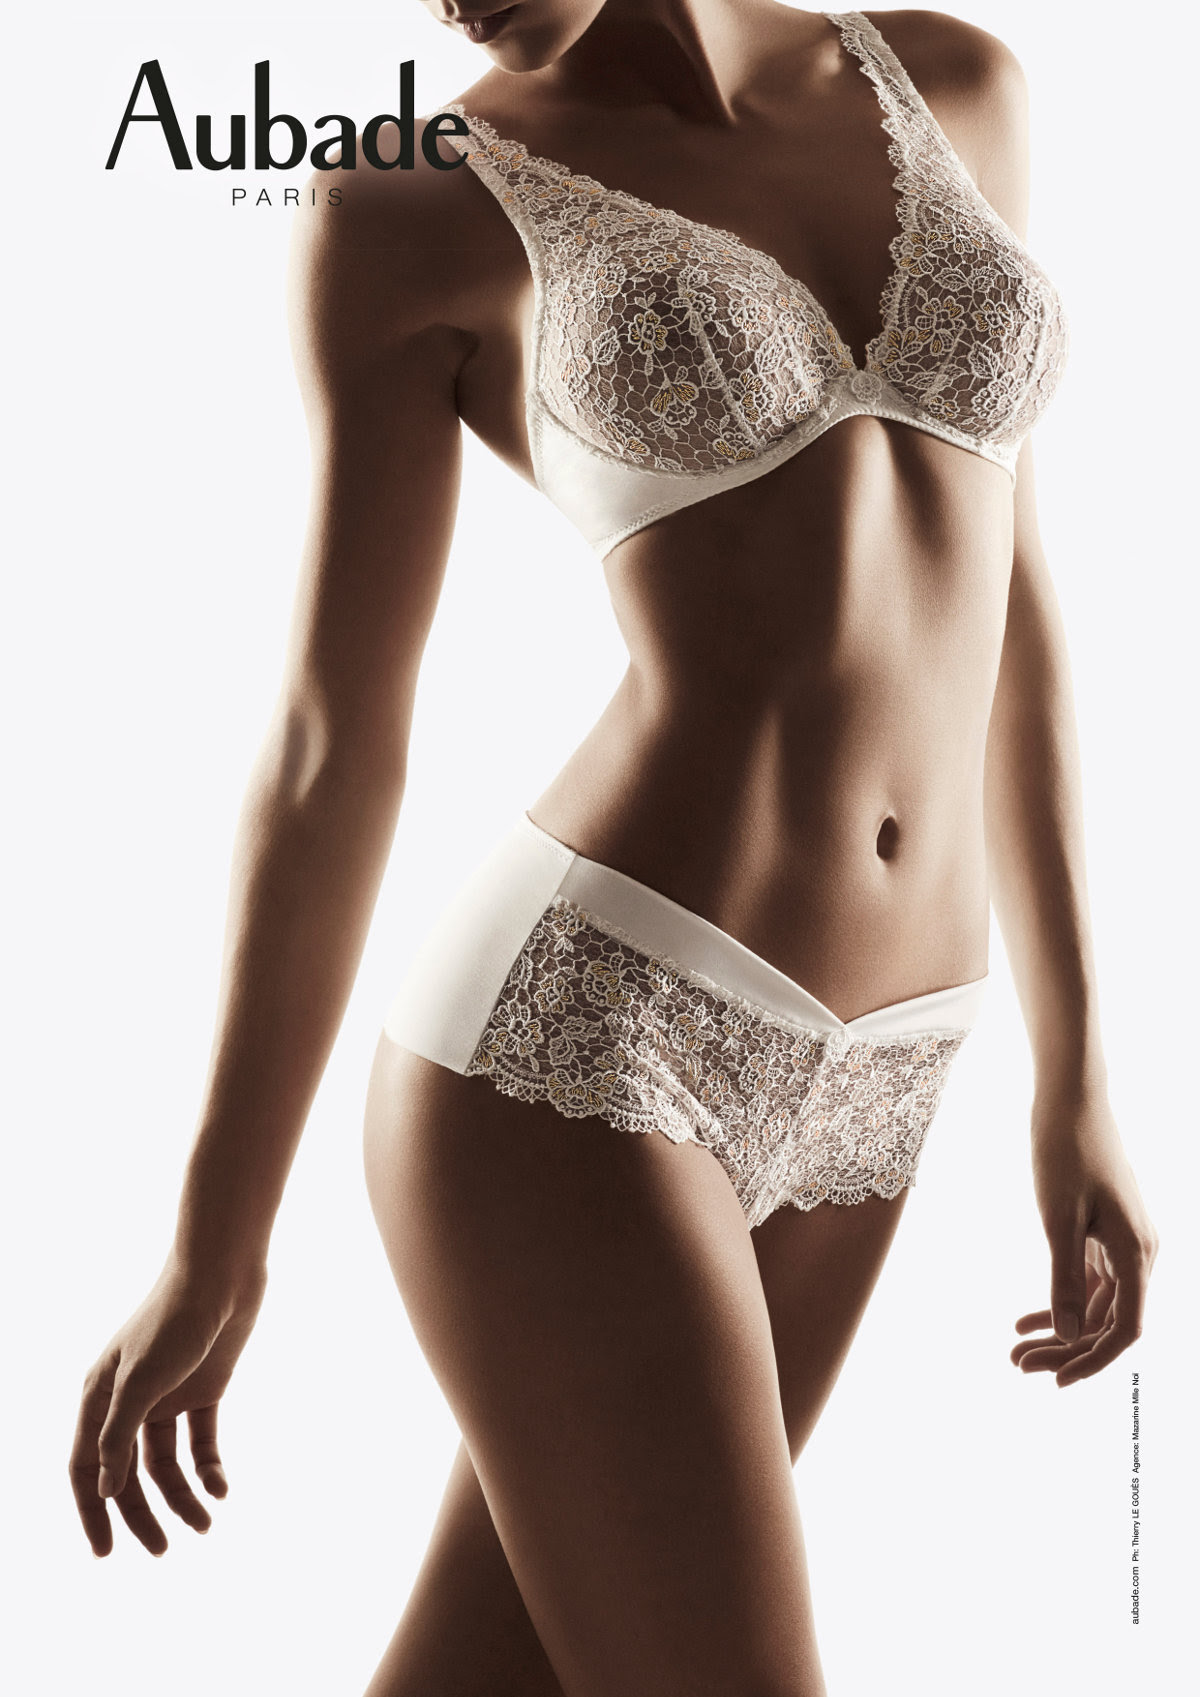 Aubade Secret de Charme at Elouise Lingerie